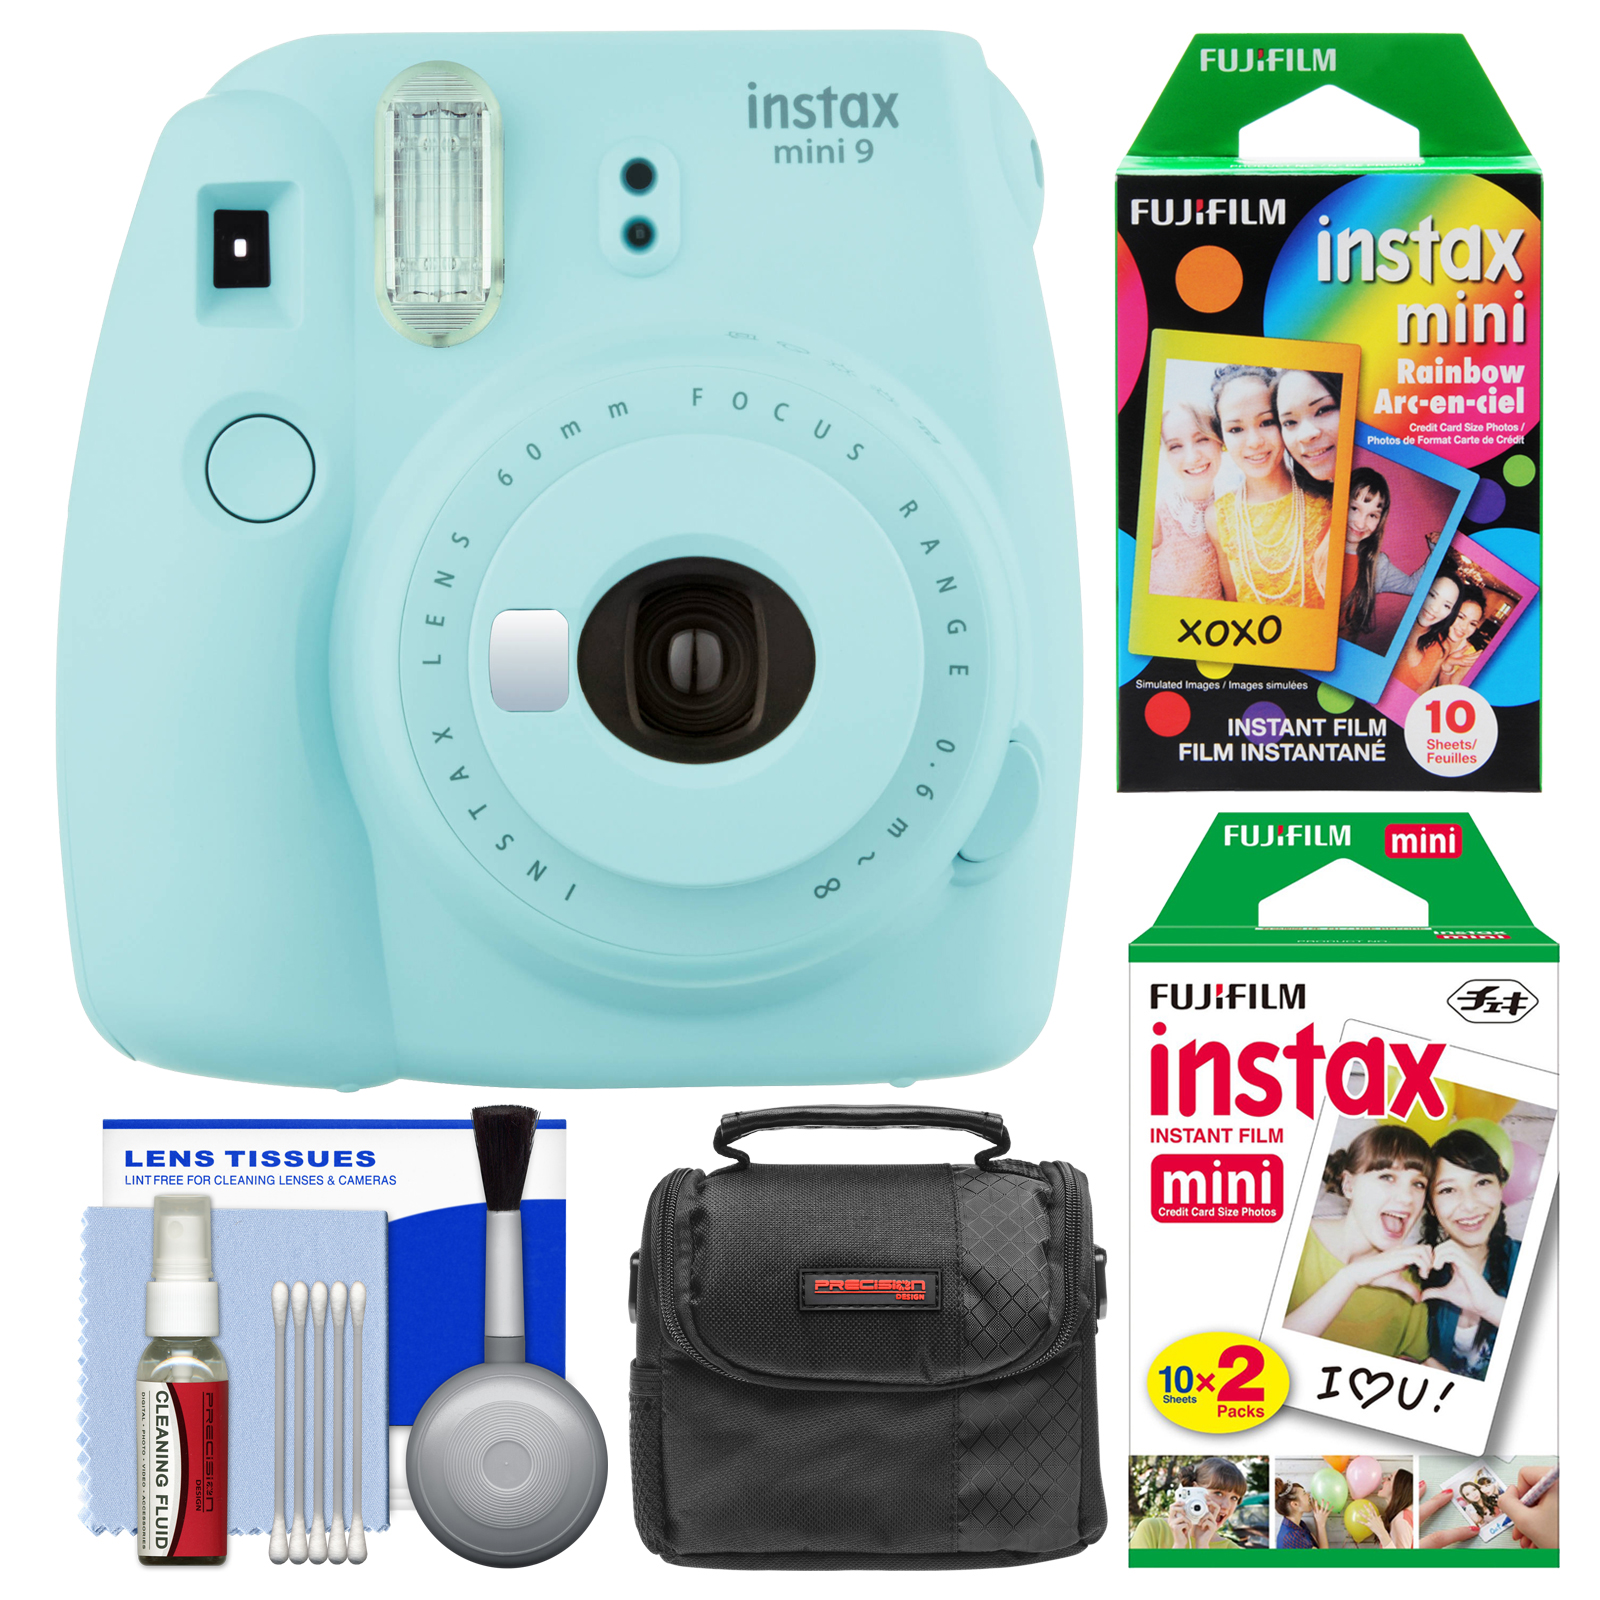 Fujifilm Instax Mini 9 Instant Film Camera (Ice Blue) with 20 Twin & 10 Rainbow Prints + Case + Cleaning Kit